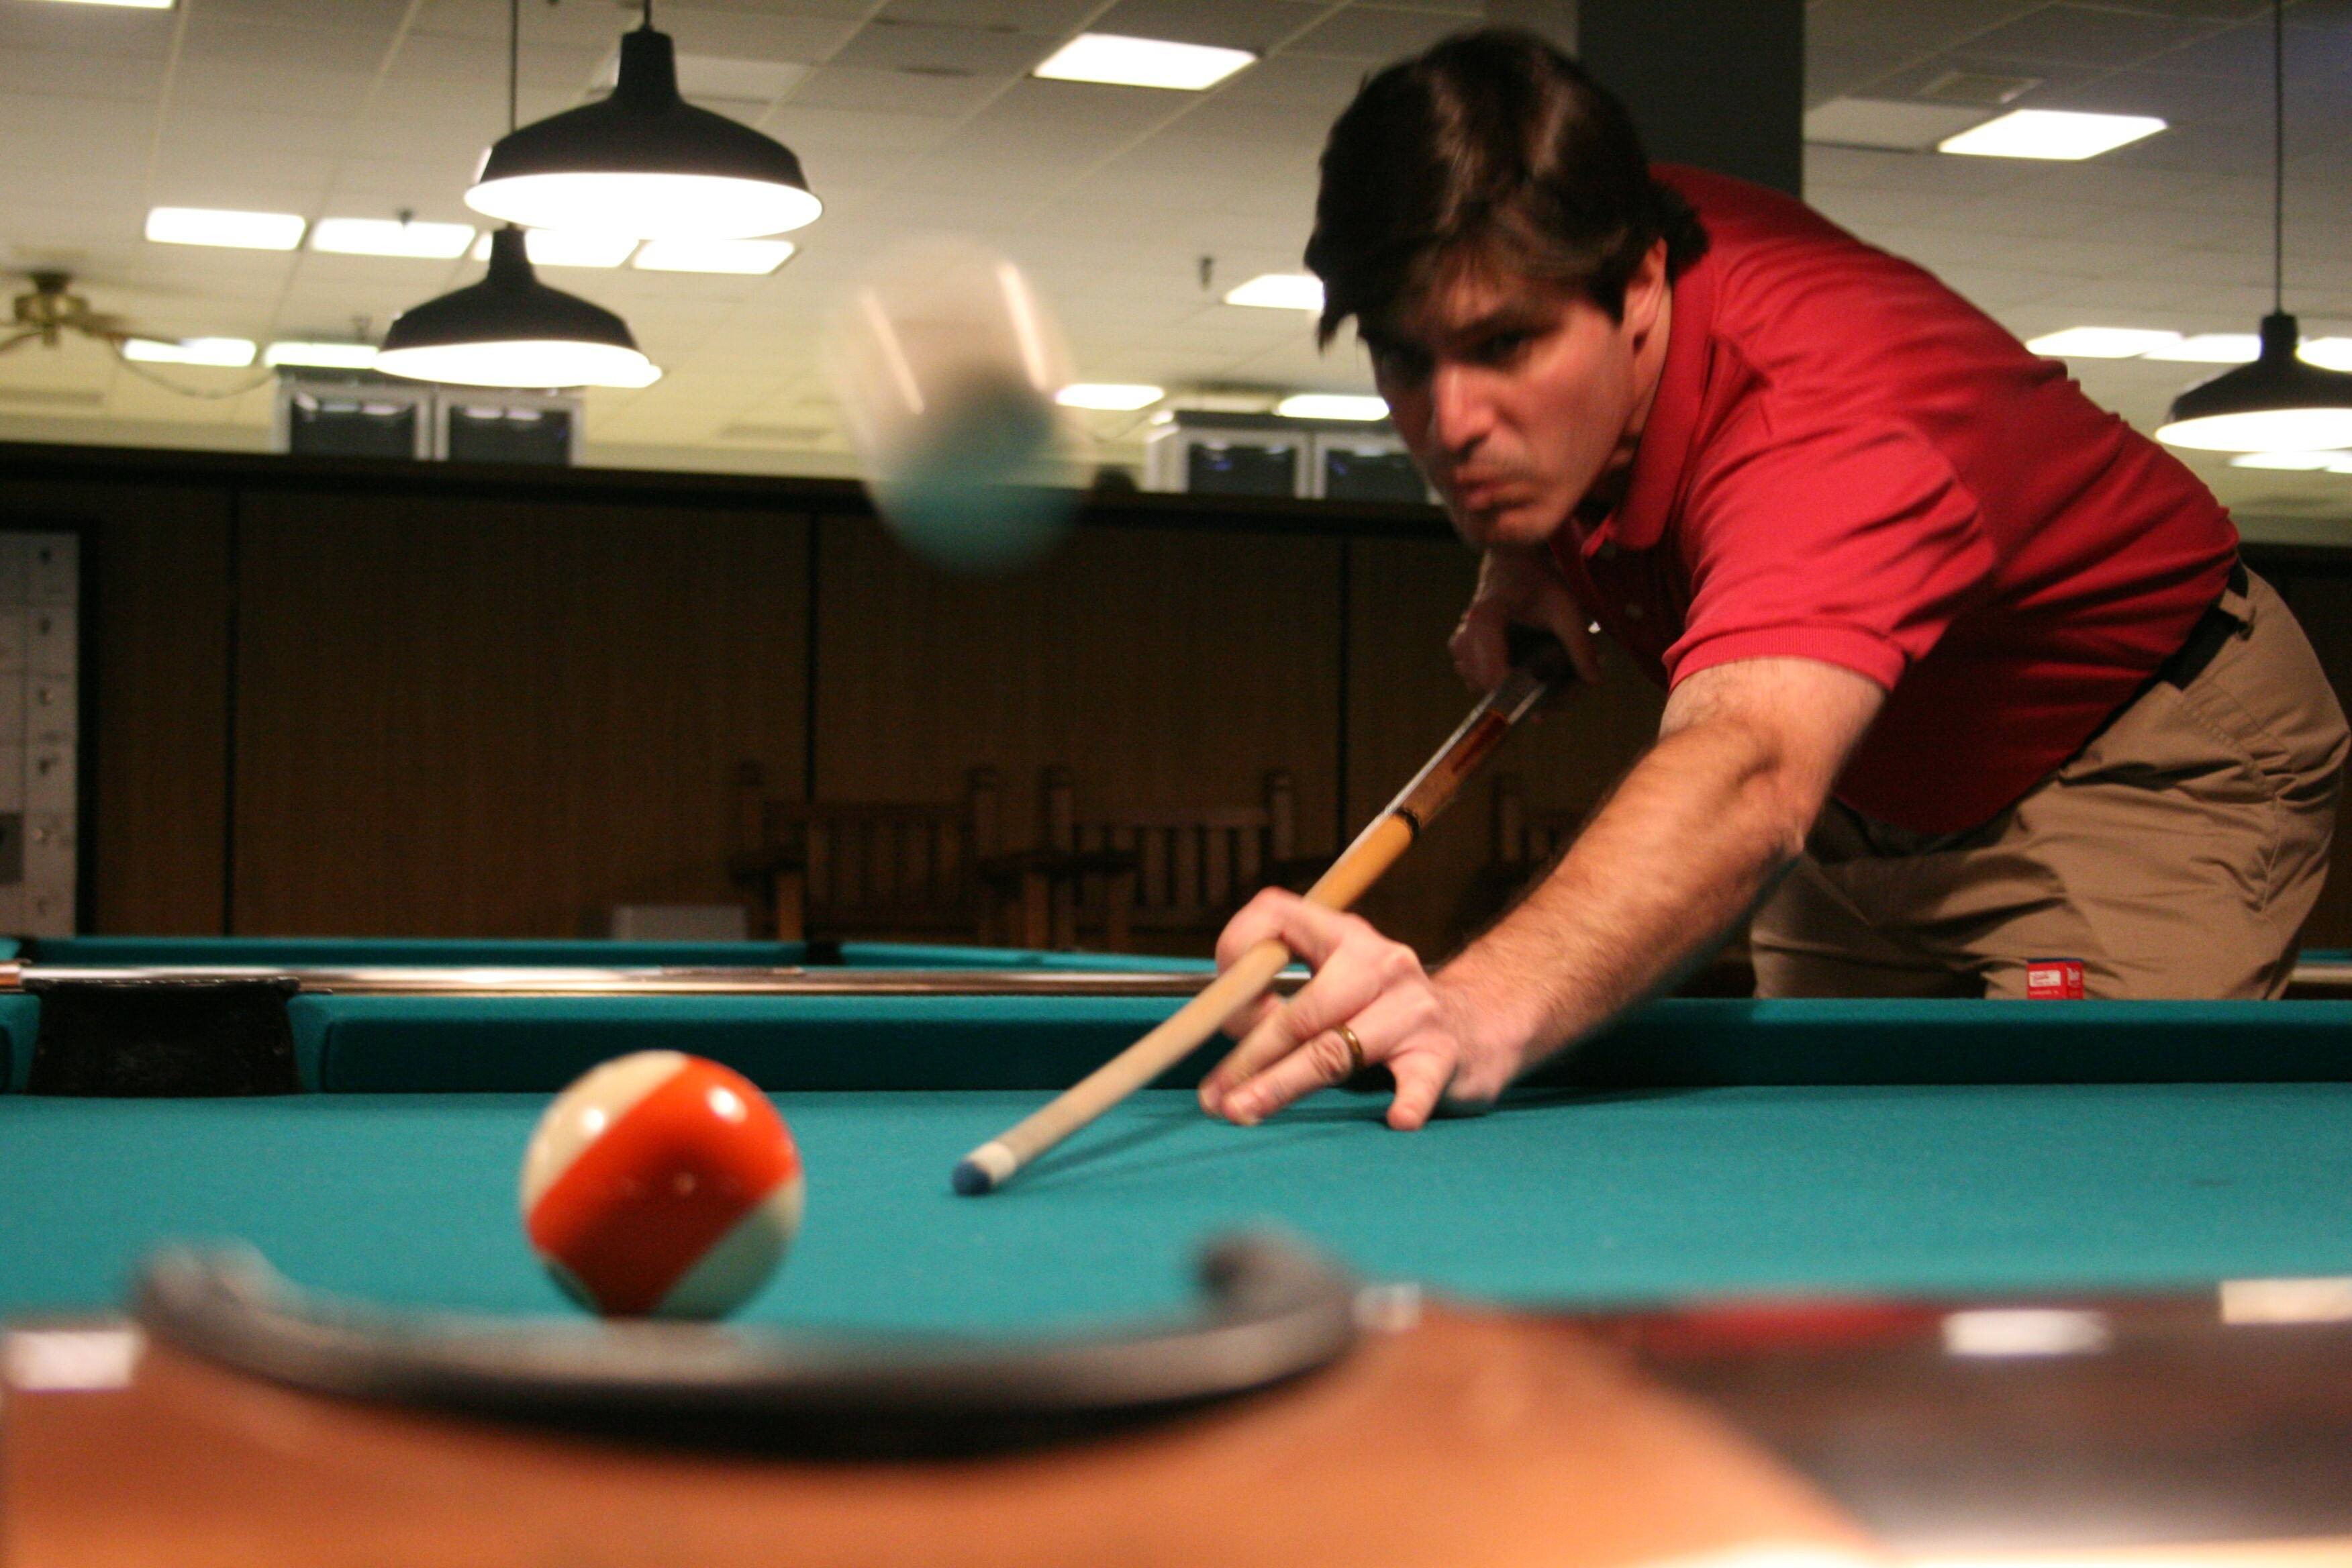 Billiards - 06 photo